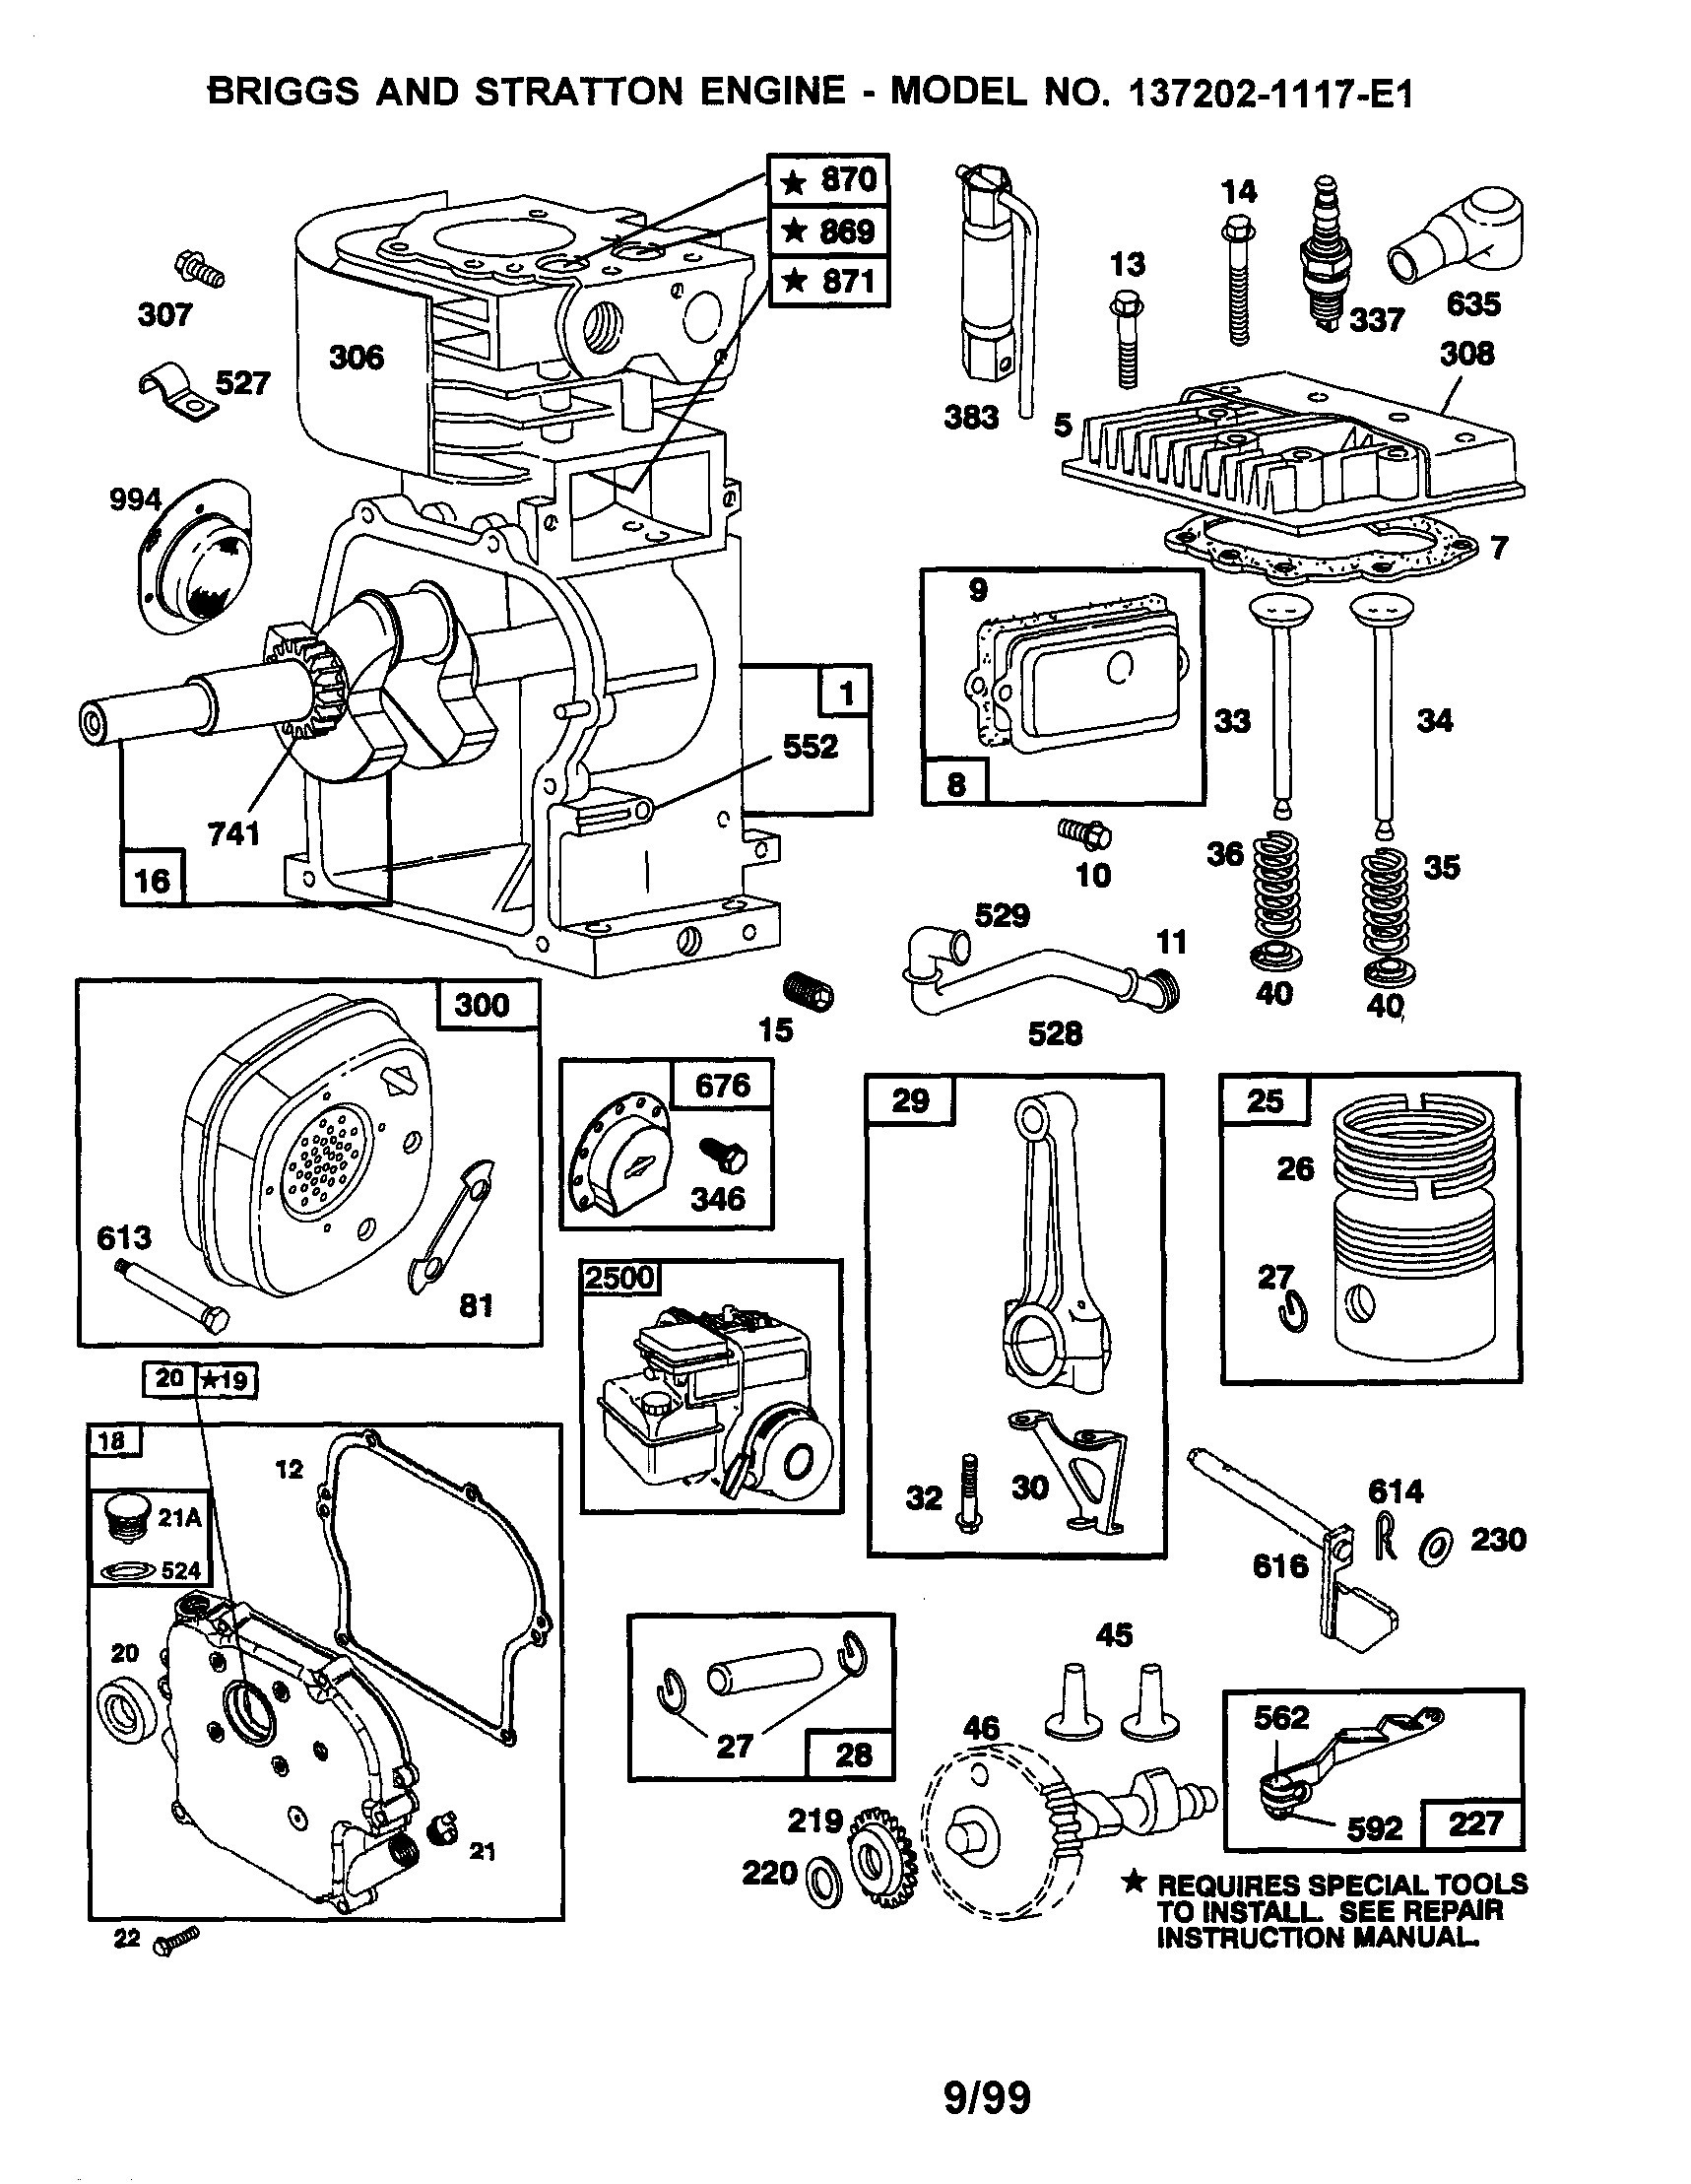 Briggs Stratton Engine Diagram Beautiful 8Hp Briggs And Stratton Briggs and Stratton Wiring Diagram 12hp Awesome